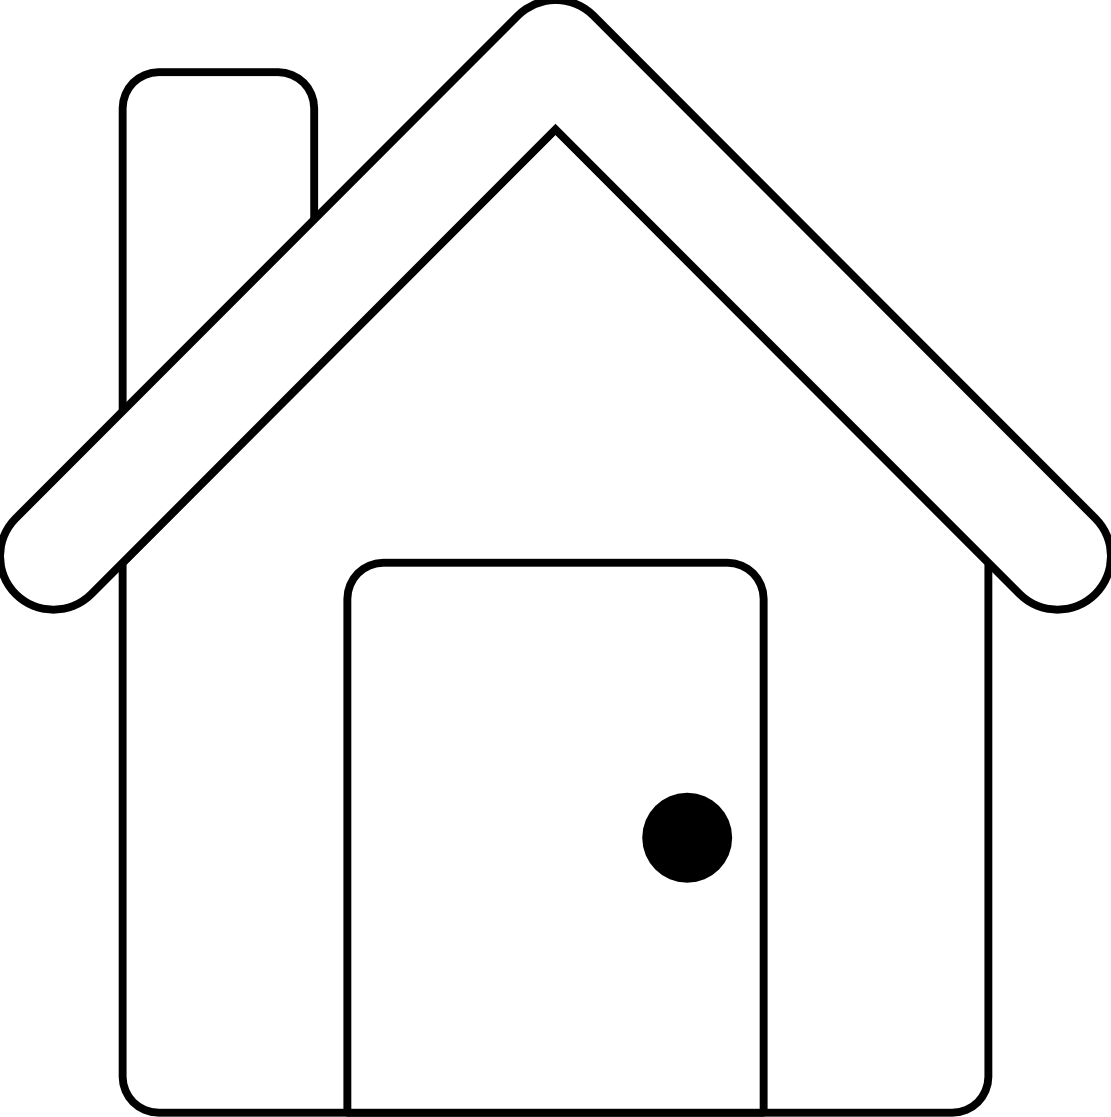 Home Clip Art Black And White Clipart House Outline Art House Clipart